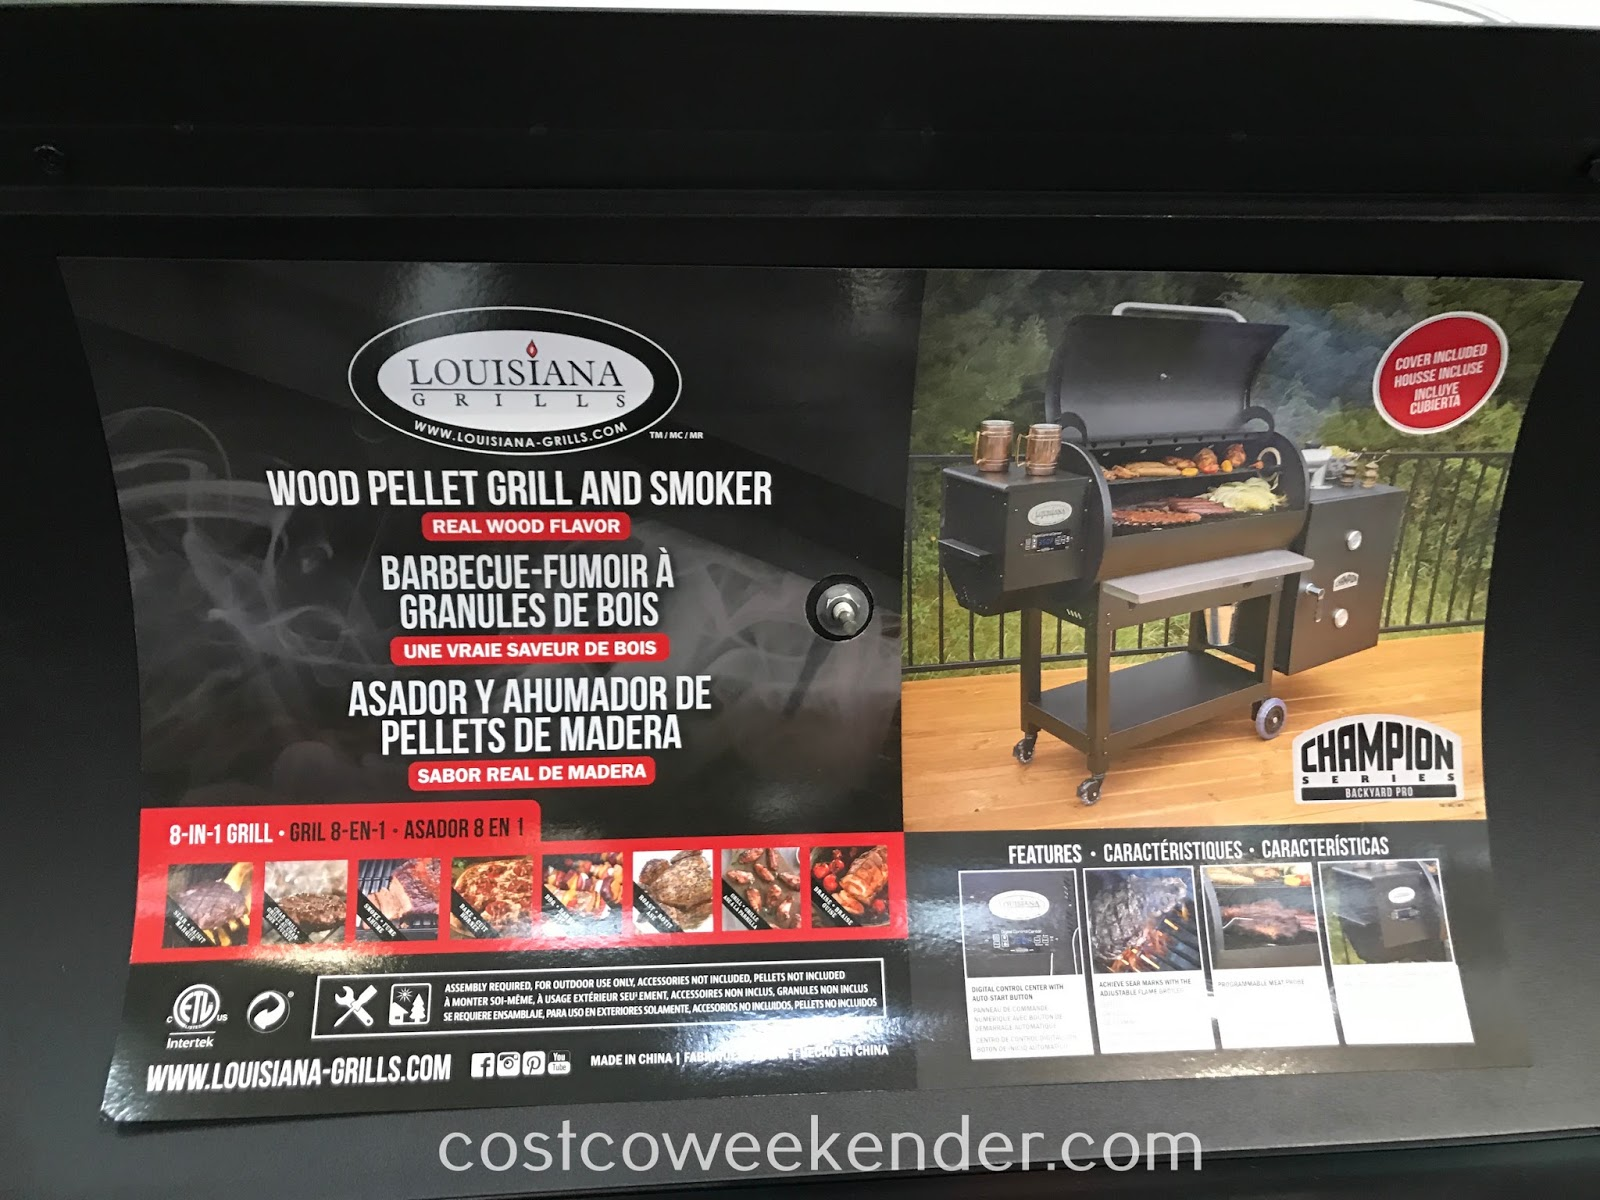 Costco 1500153 - Sear some steaks or smoke a brisket with the Louisiana Grills Wood Pellet Grill and Smoker (model 60901)